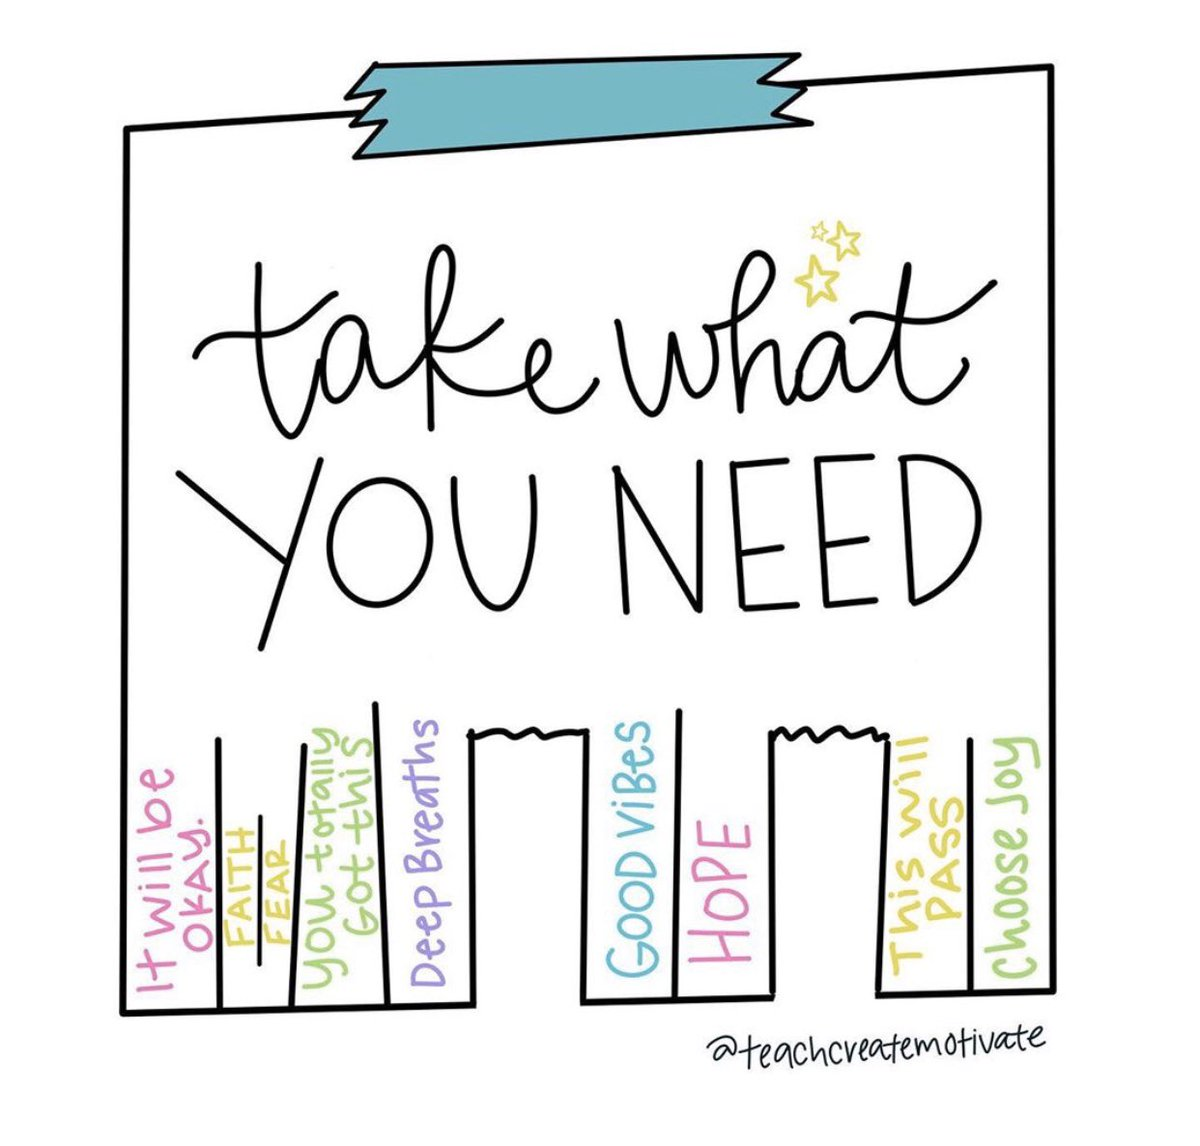 ✨What do you need to take today? We are here for you.✨ 📸 : @teachcreatemotivate